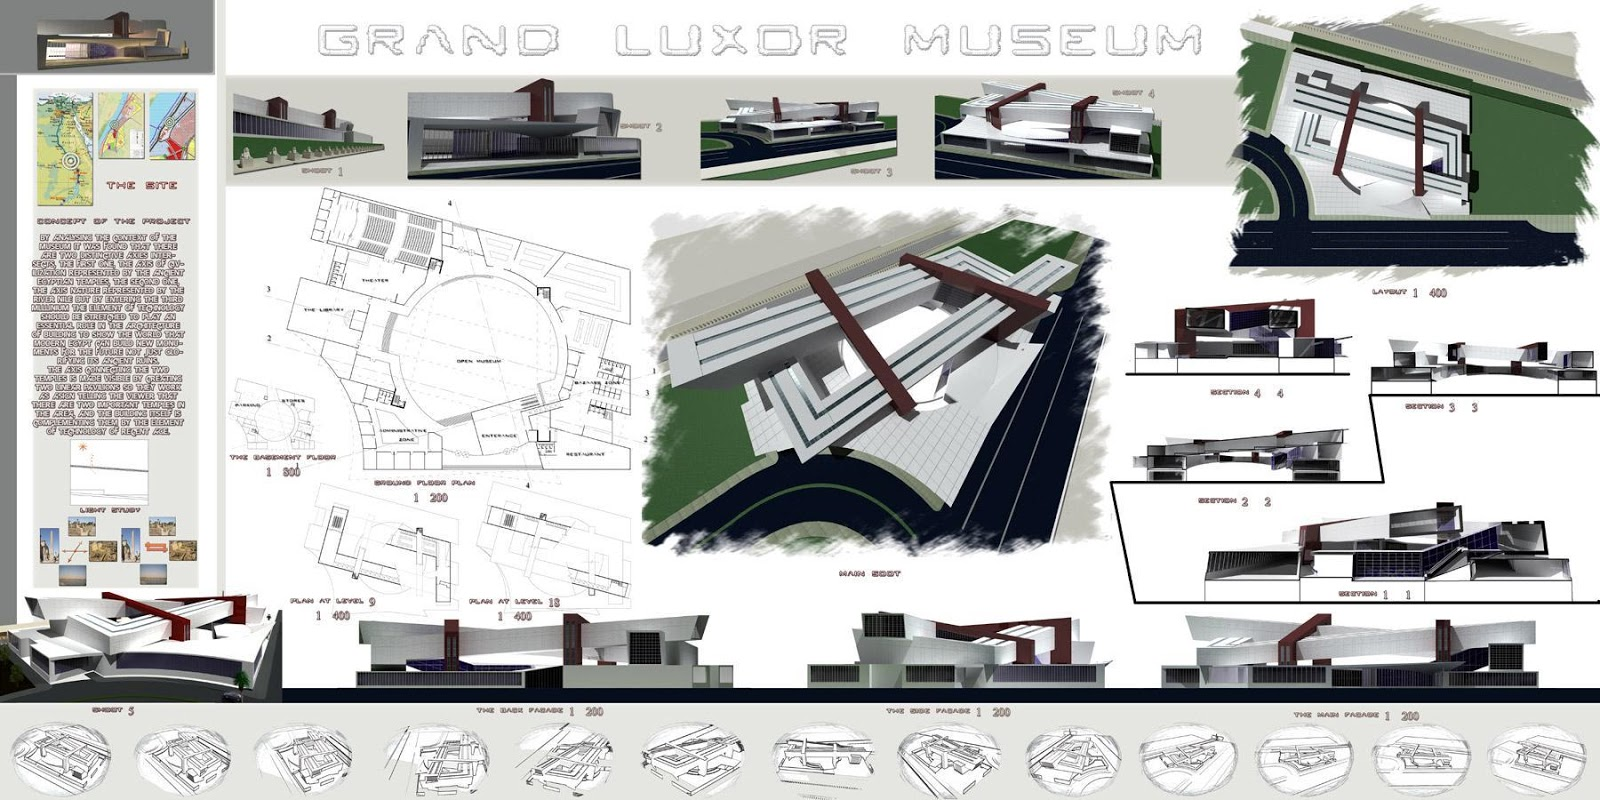 Poster design architecture - Graduation Project Grand Luxor Museum Architectural Poster